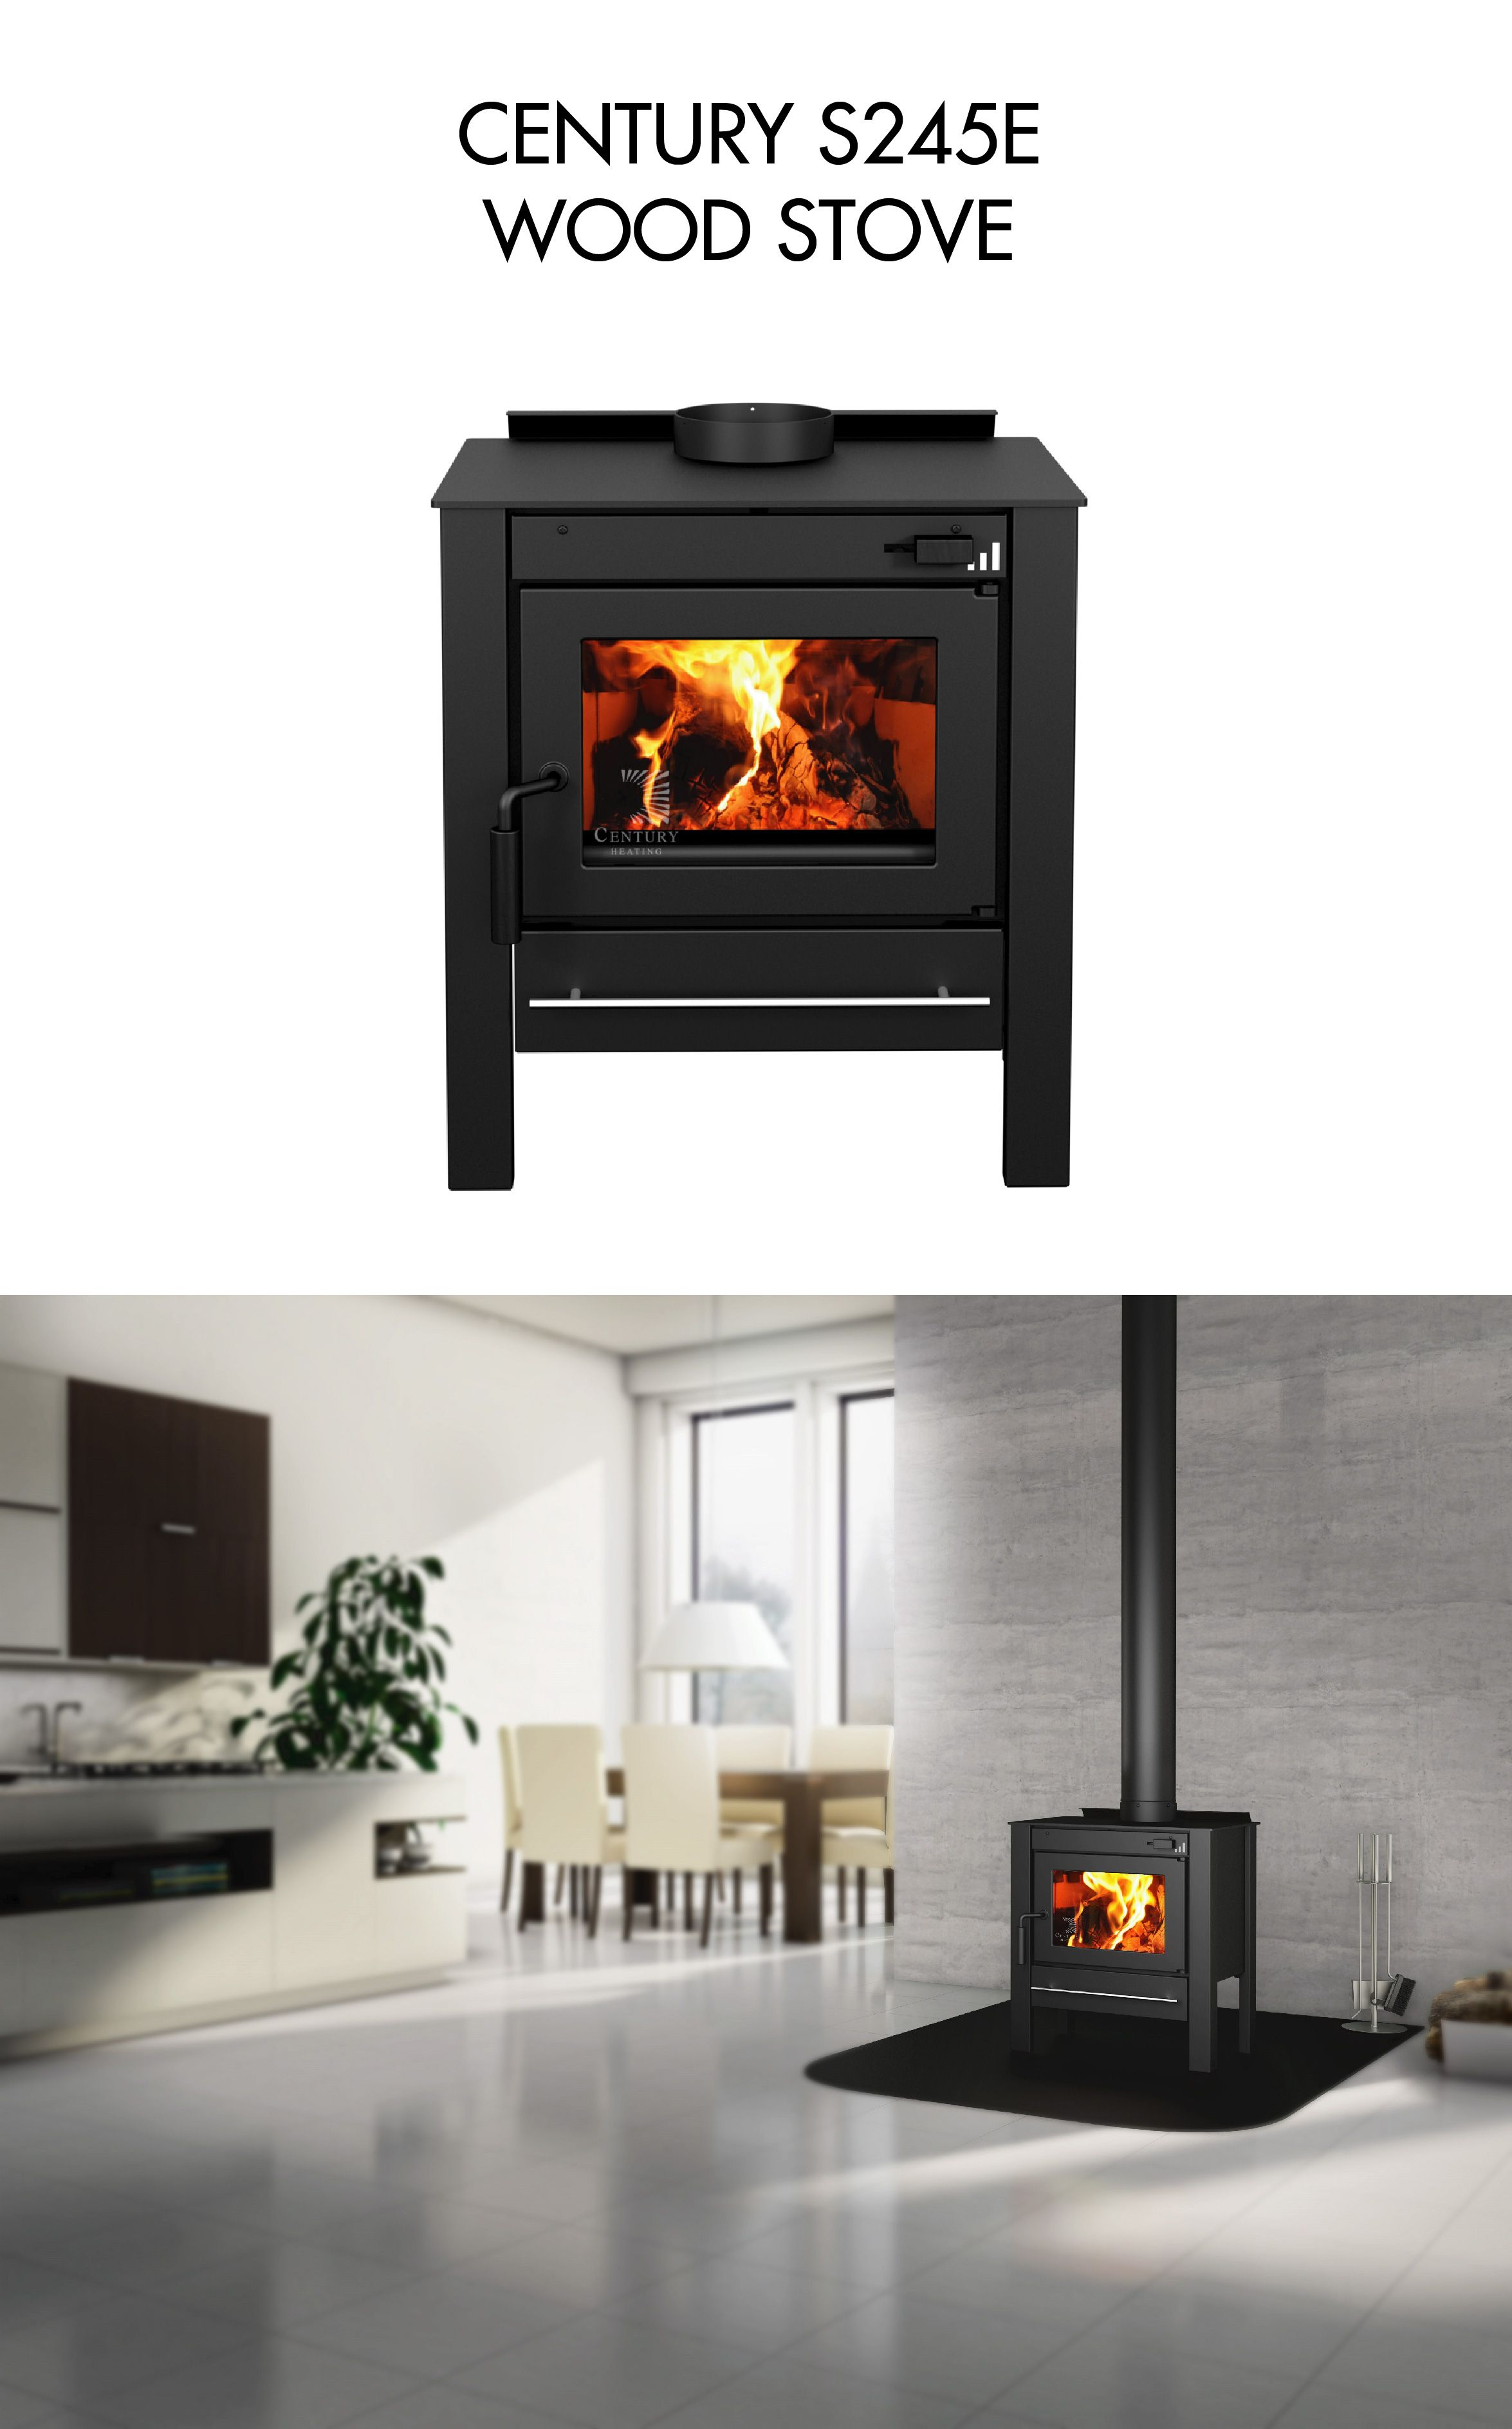 Century S245e The S245e Is A High Efficiency Wood Stove Among The Smallest On The Market This Hi Wood Stove Fireplace Wood Stove Decor Wood Fireplace Inserts